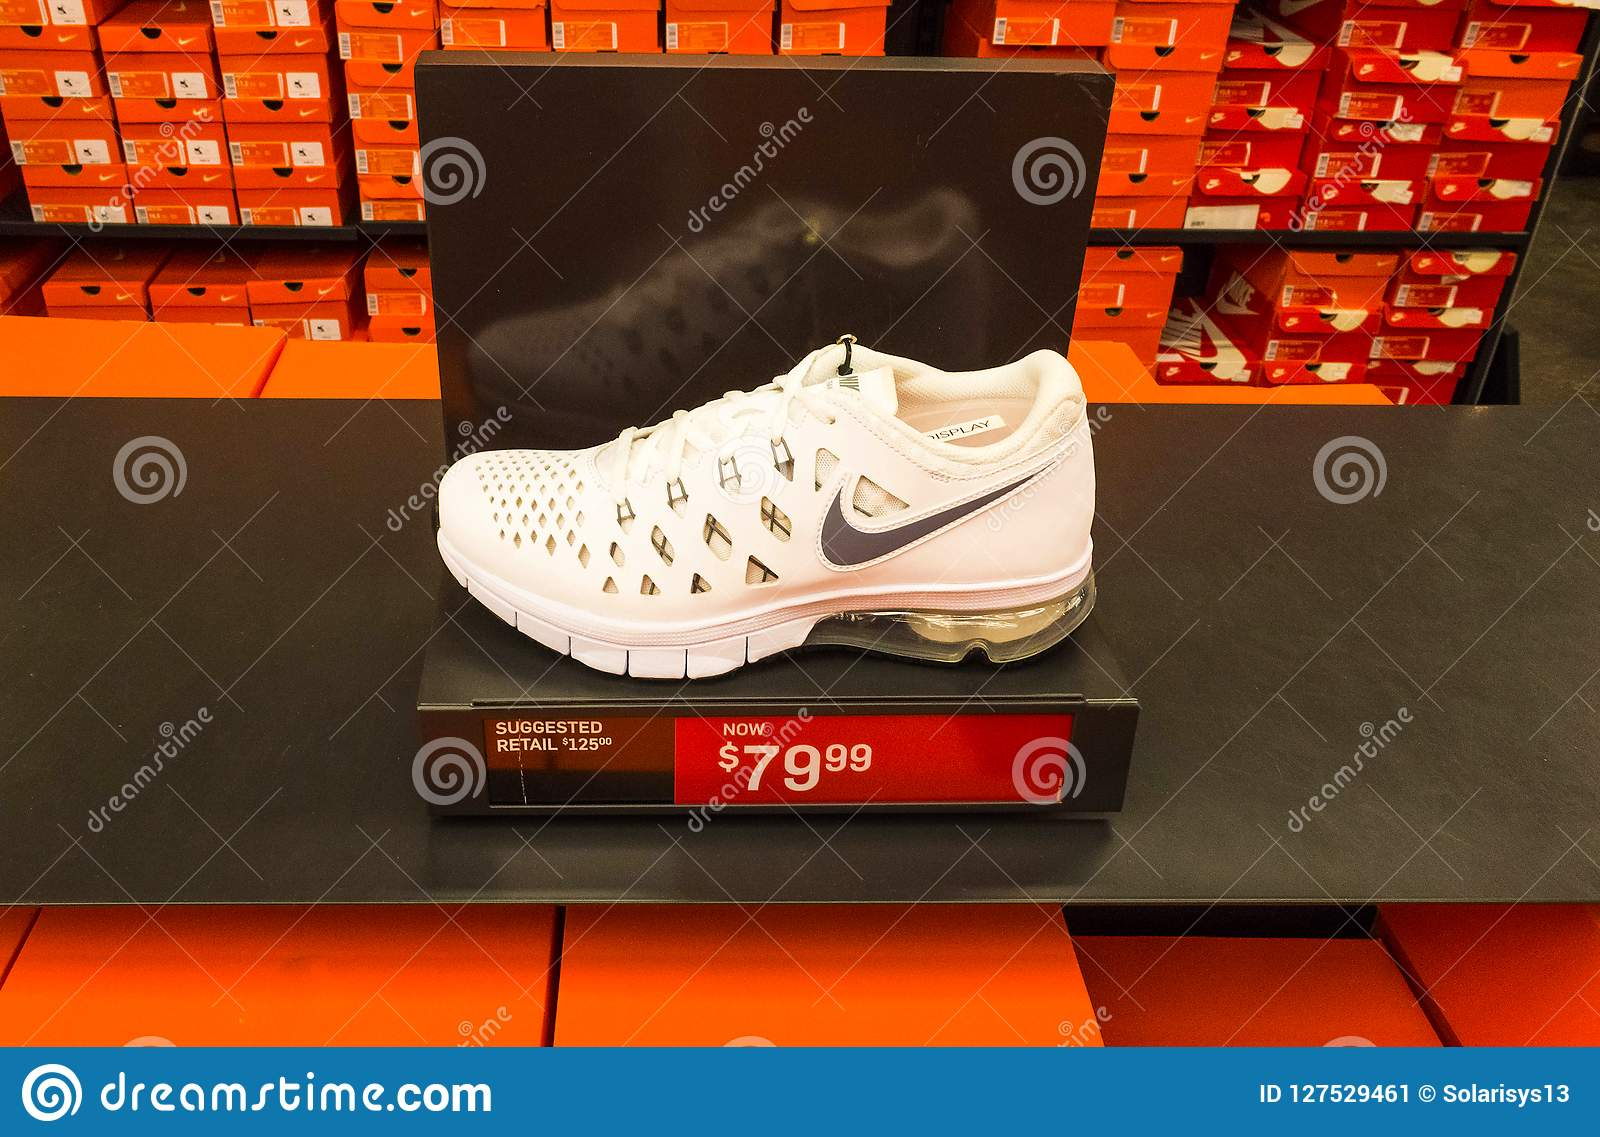 Nike 82018Background OrlandoUsa May Of Shoes Stacked Boxes OkXiTwulZP